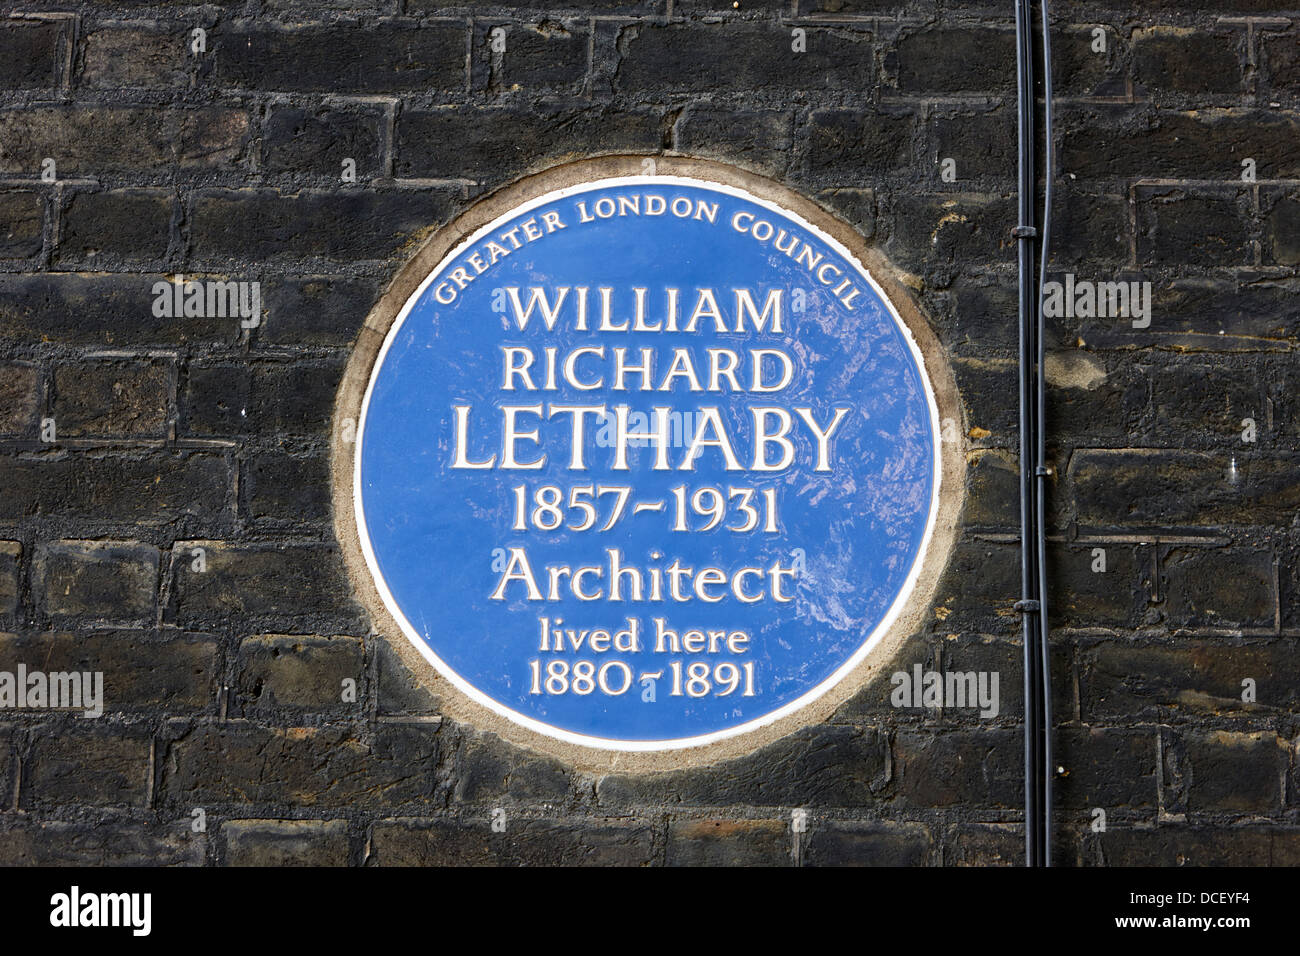 glc blue plaque on a building for william richard lethaby London England UK - Stock Image